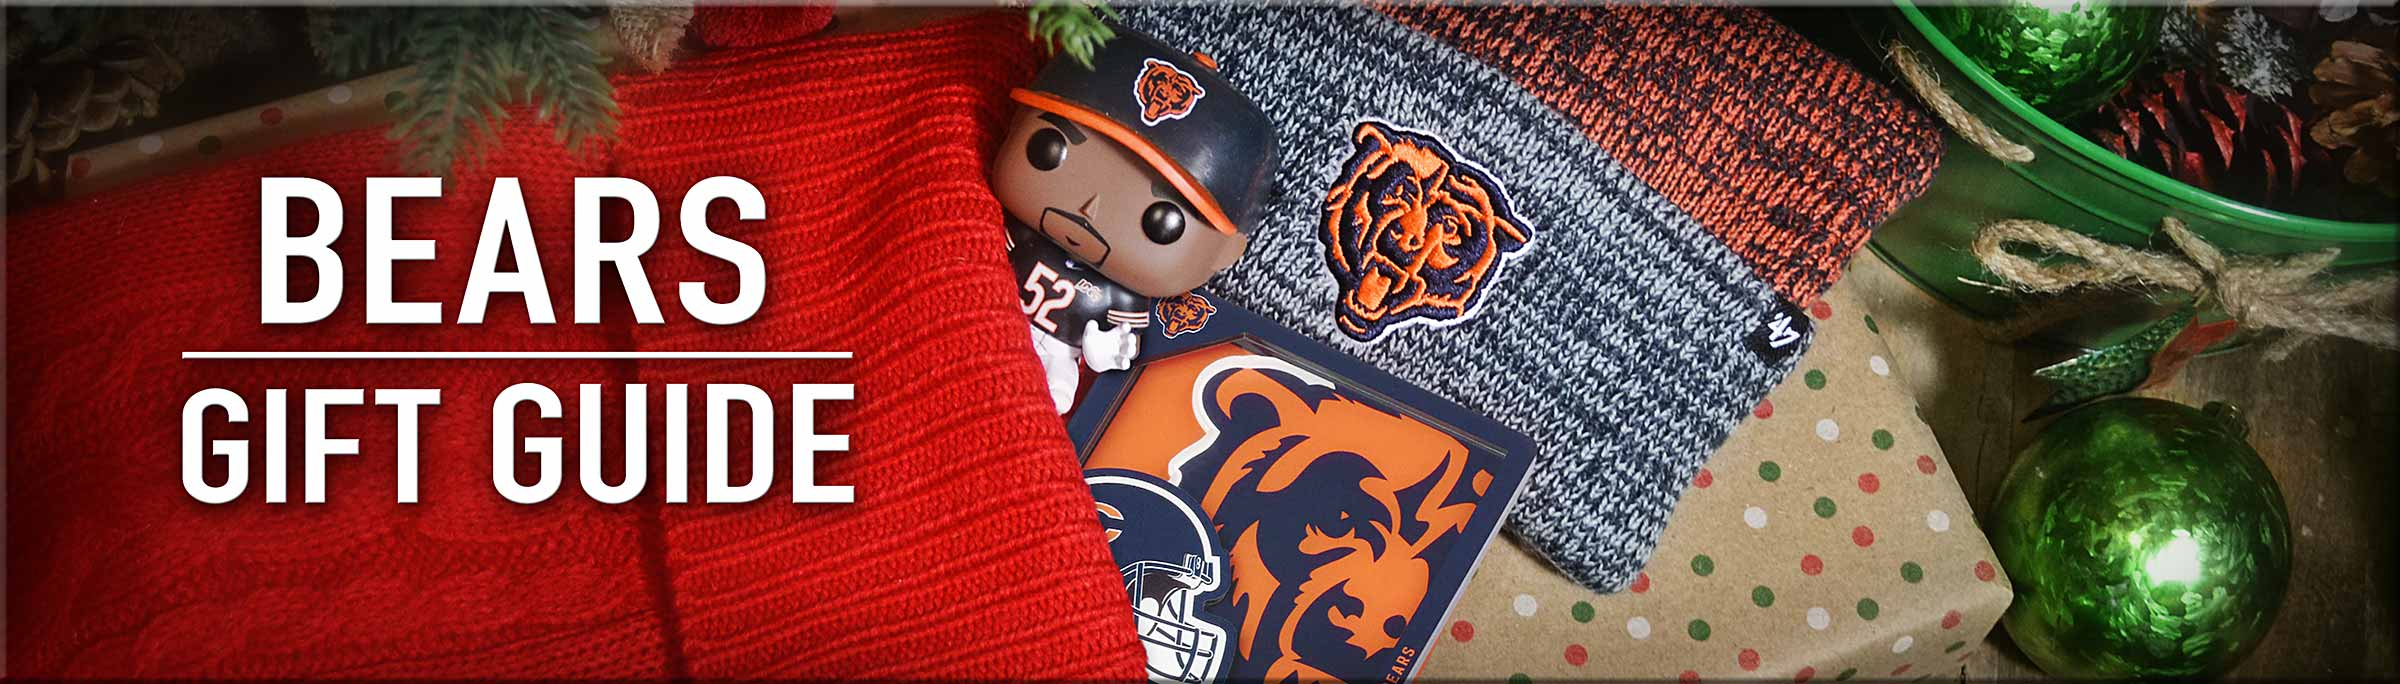 Chicago Bears Gift Guide - Everything you need for the Bears Fan on your shopping list.